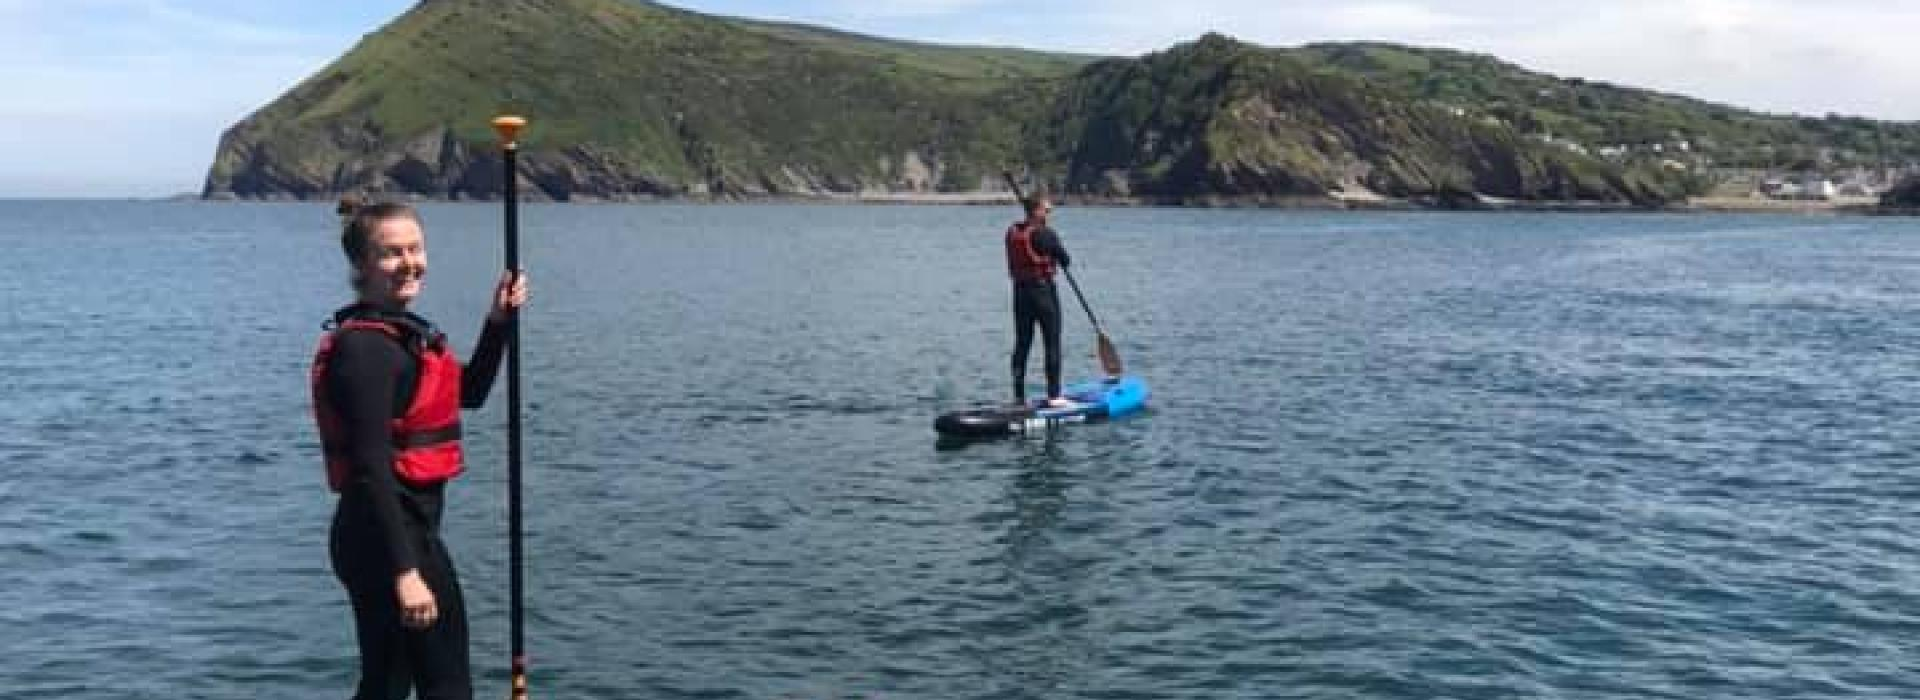 stand up paddleboarding, SUP, Watermouth Cove, North Devon, watersports